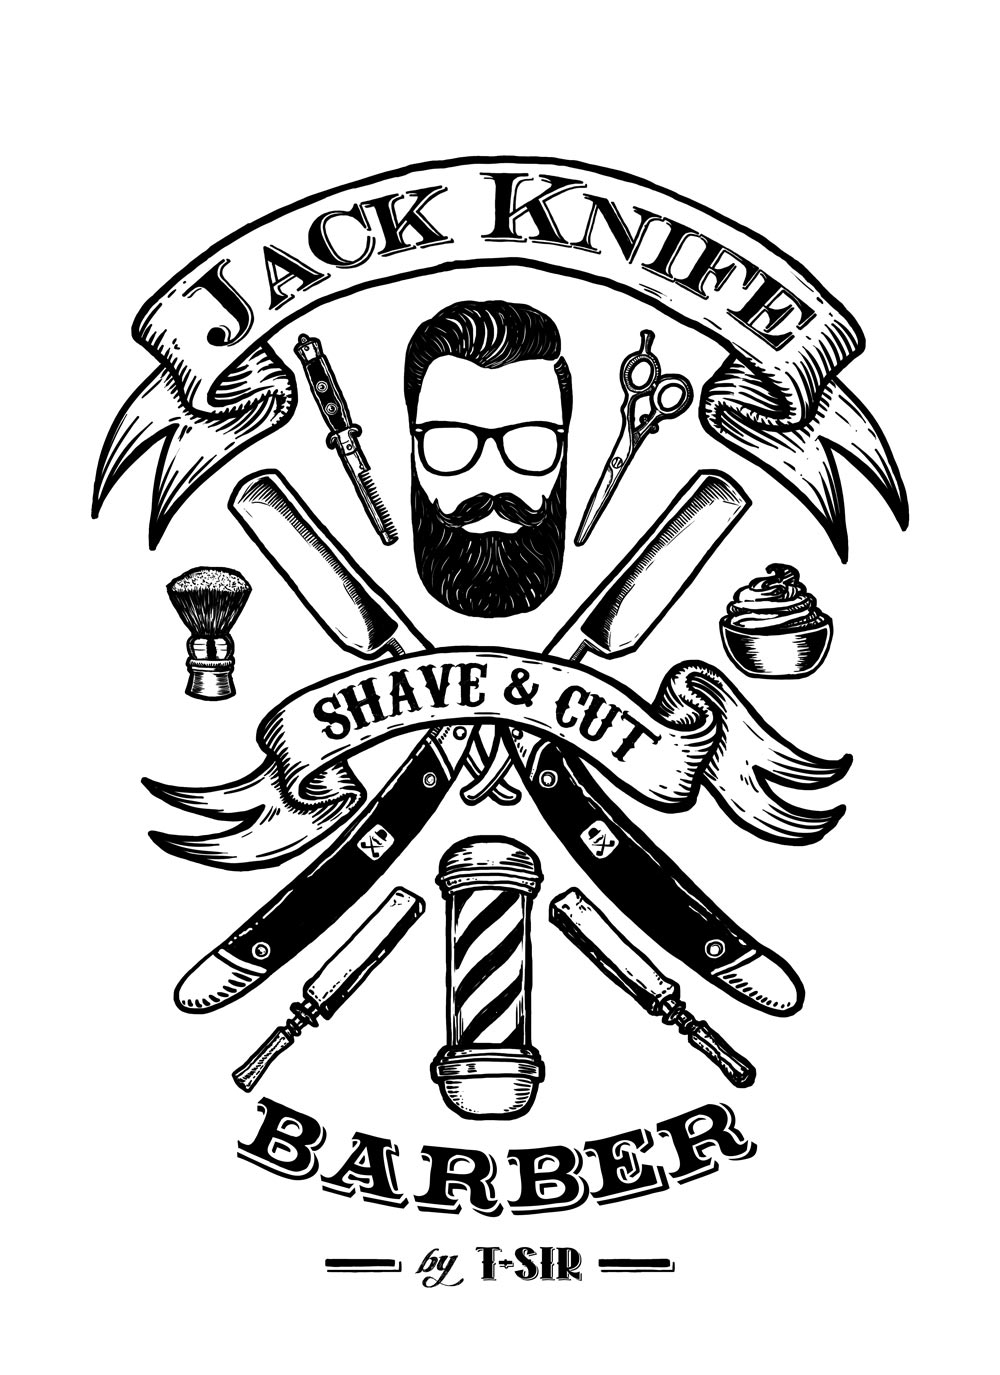 Jack Knife Barber design | Oscar Postigo